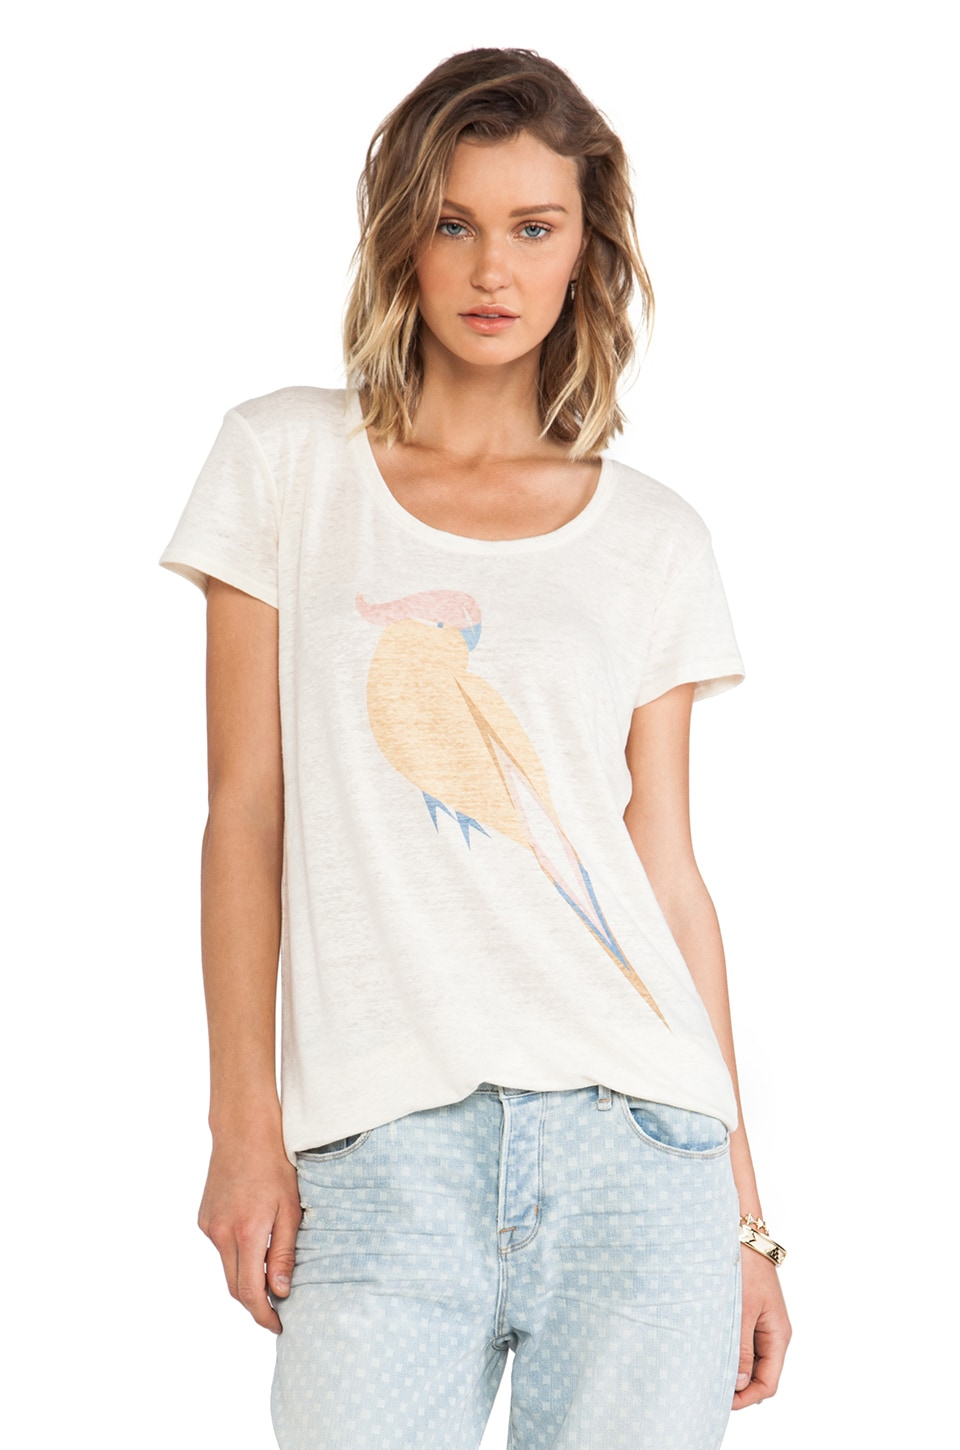 Marc by Marc Jacobs Capella Graphic Tee in Antique White Multi